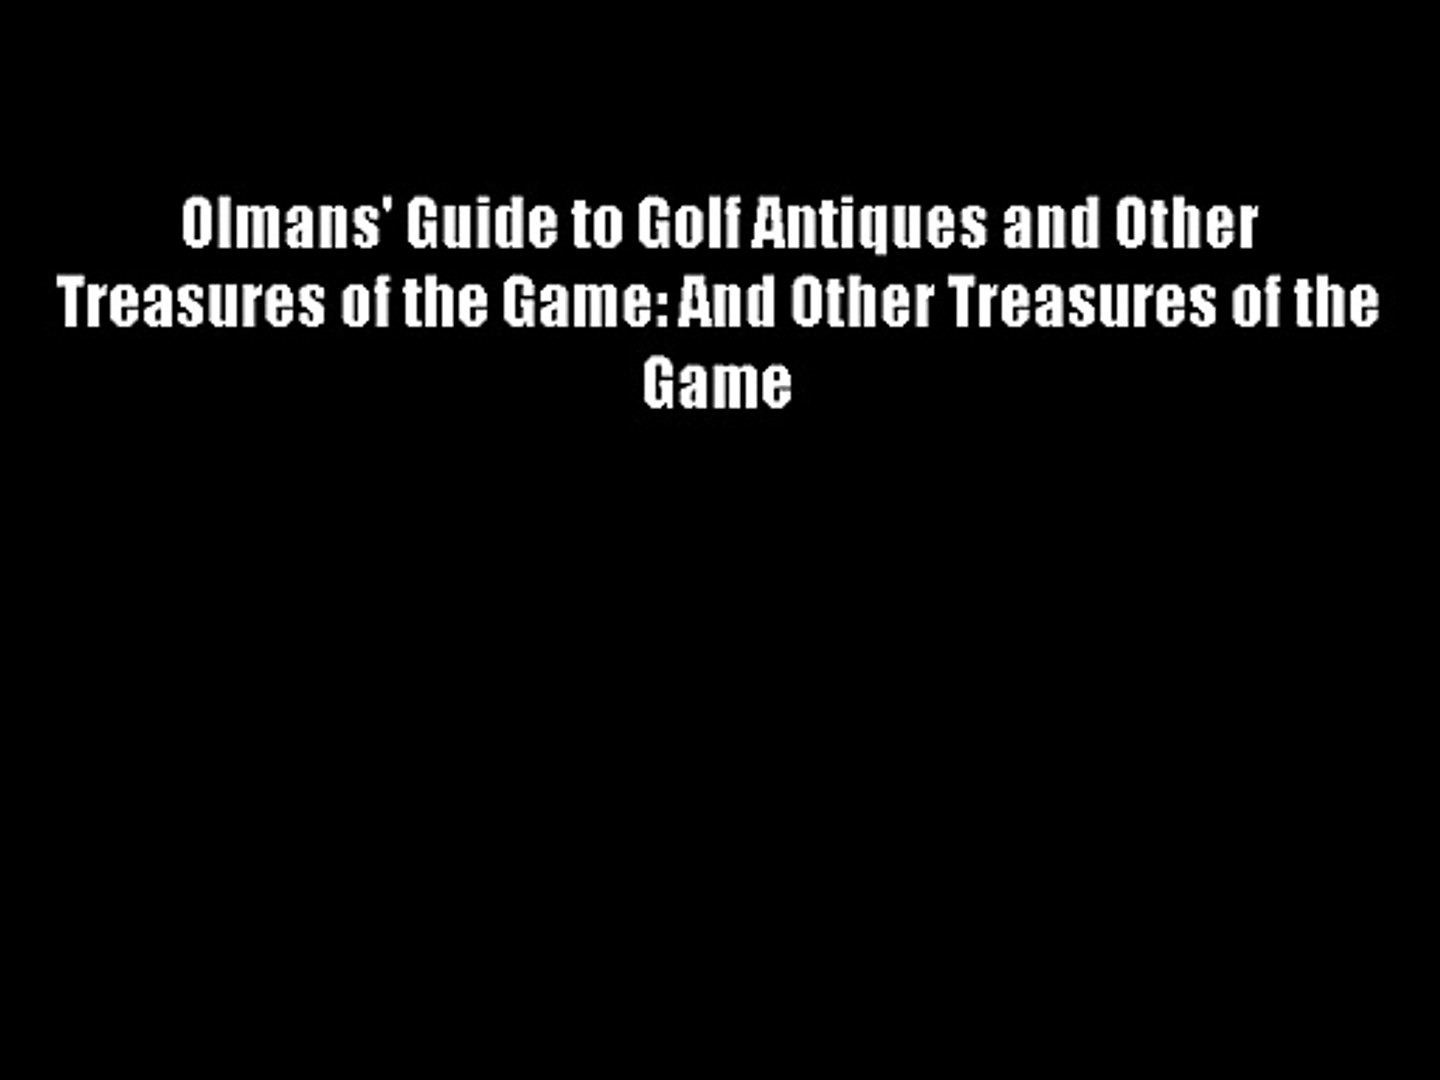 Olmans' Guide to Golf Antiques and Other Treasures of the Game: And Other Treasures of the